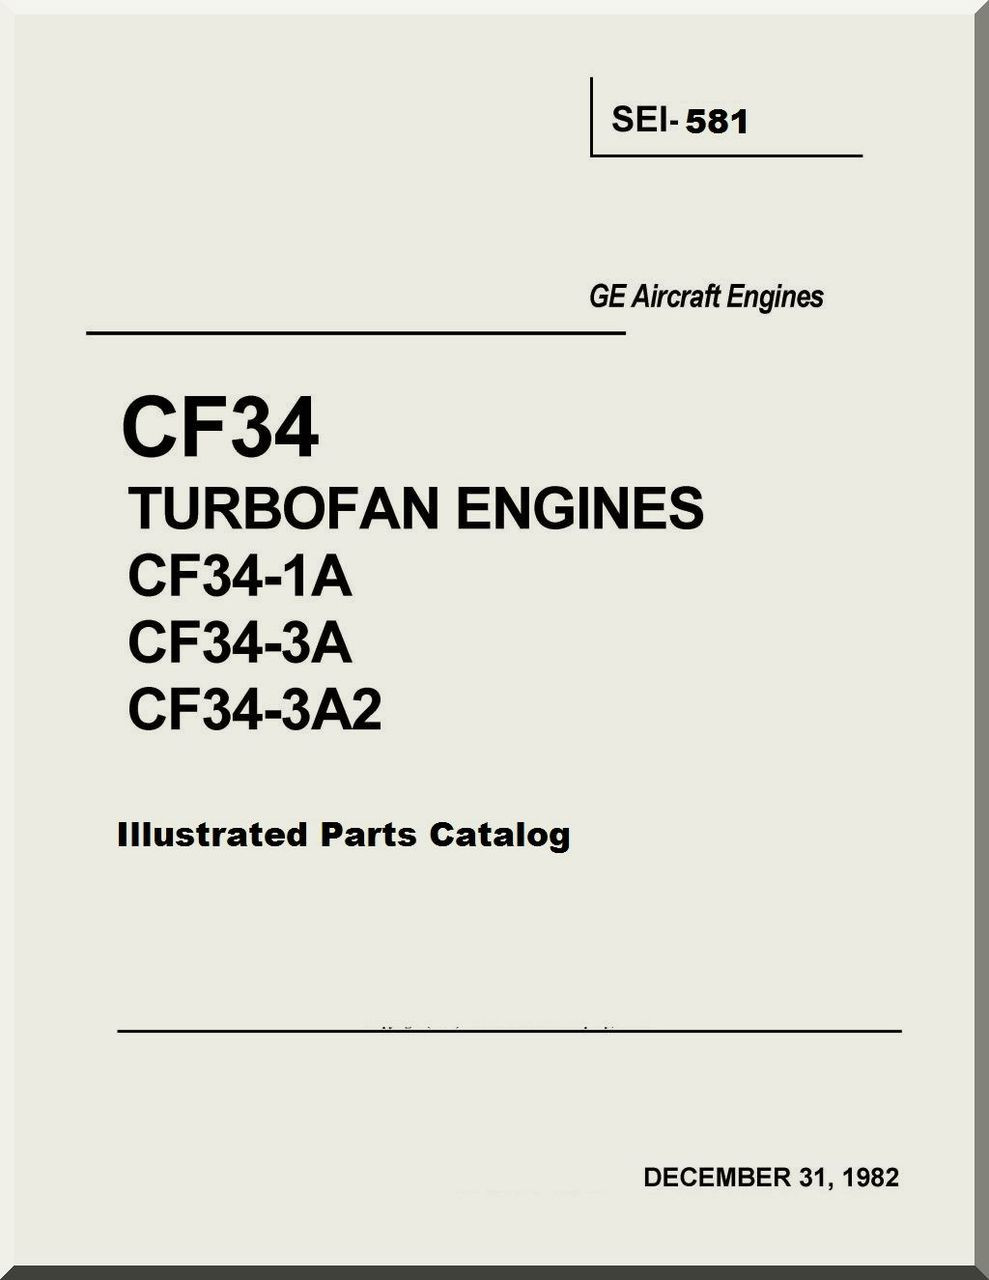 General Electric CF34 Turbofan Engines CF34-1A CF34-3A